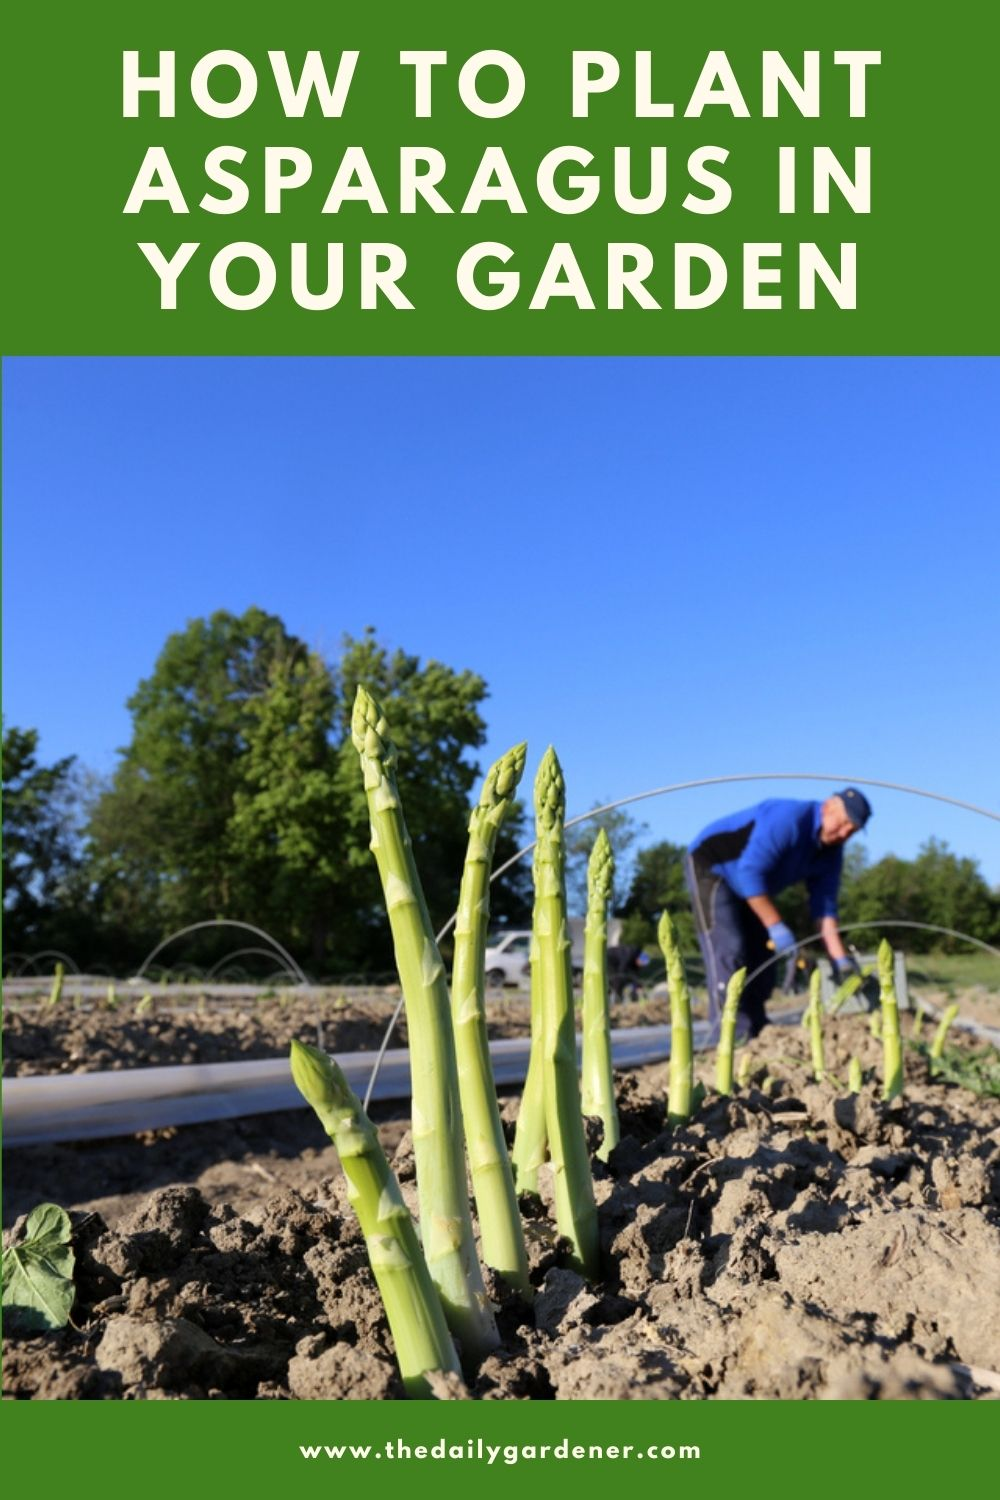 How to Plant Asparagus in Your Garden 1